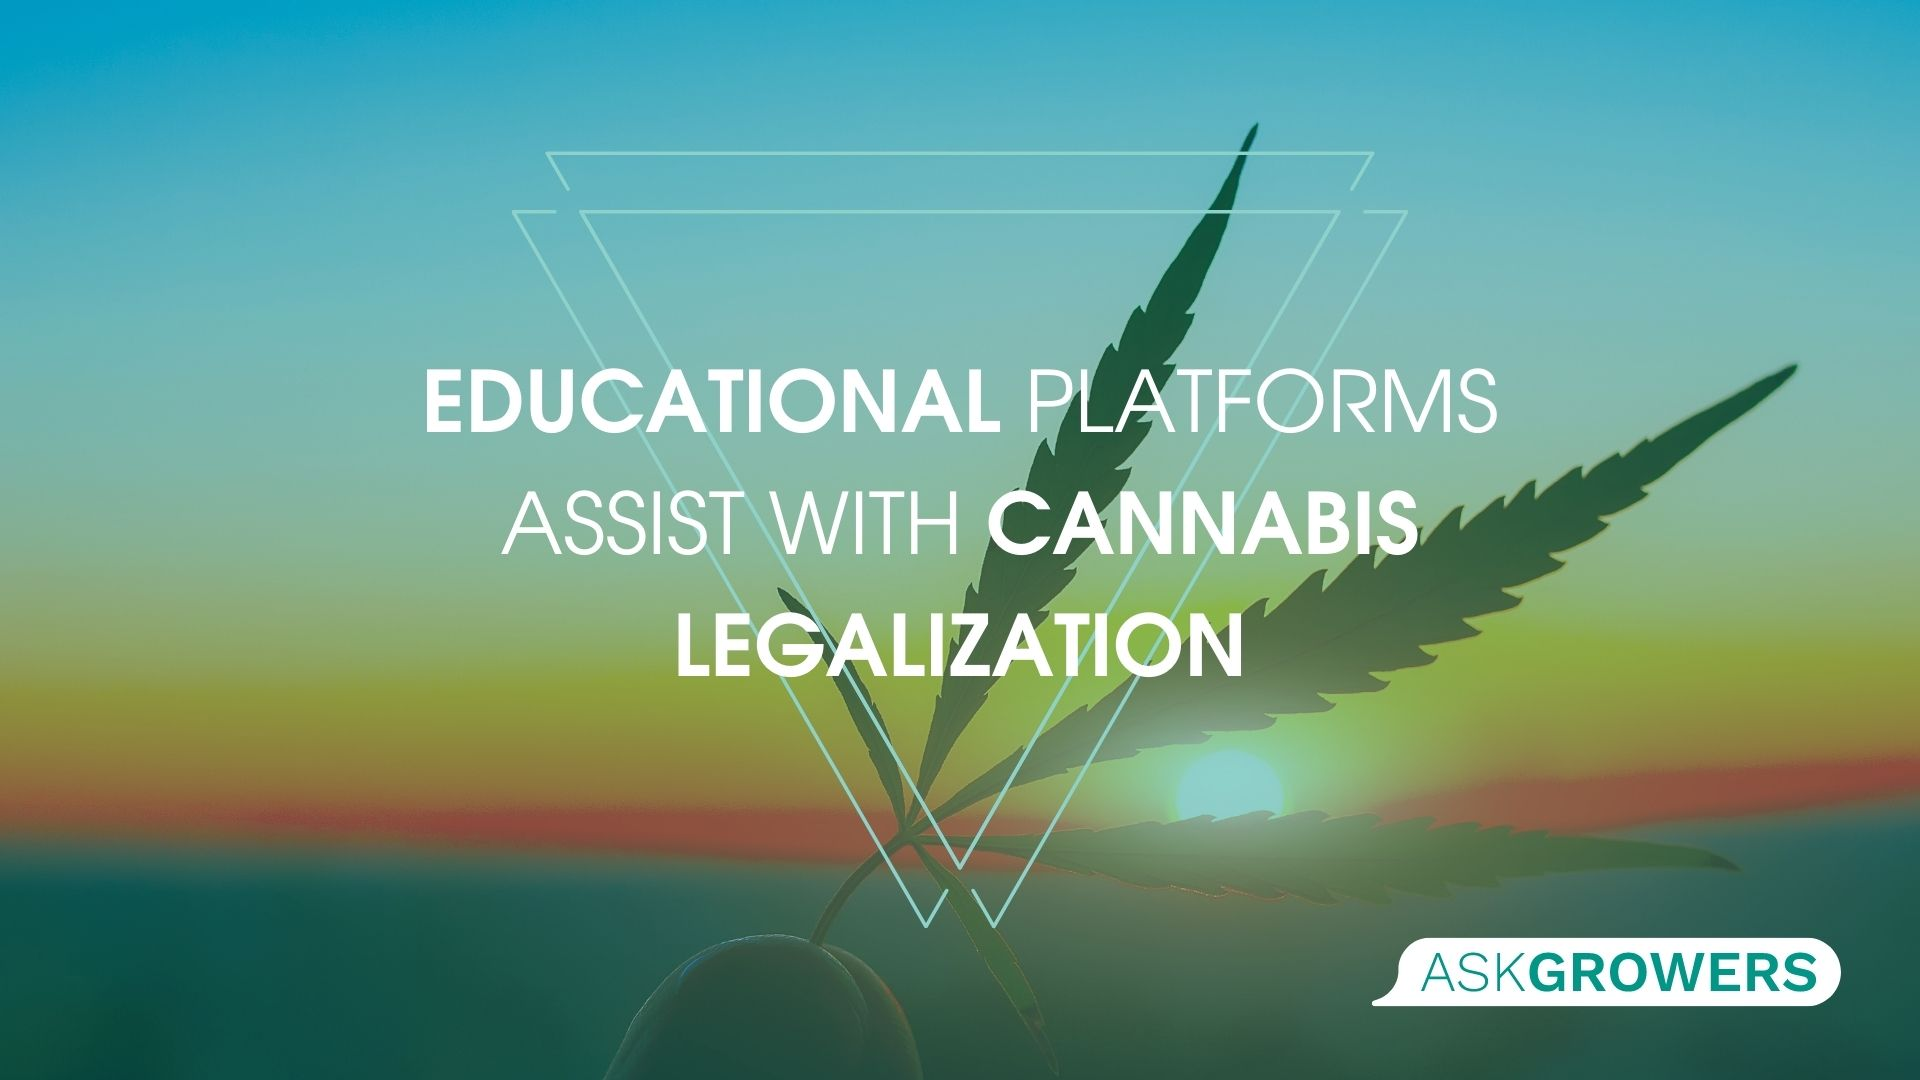 Importance of Educational Platforms, AskGrowers